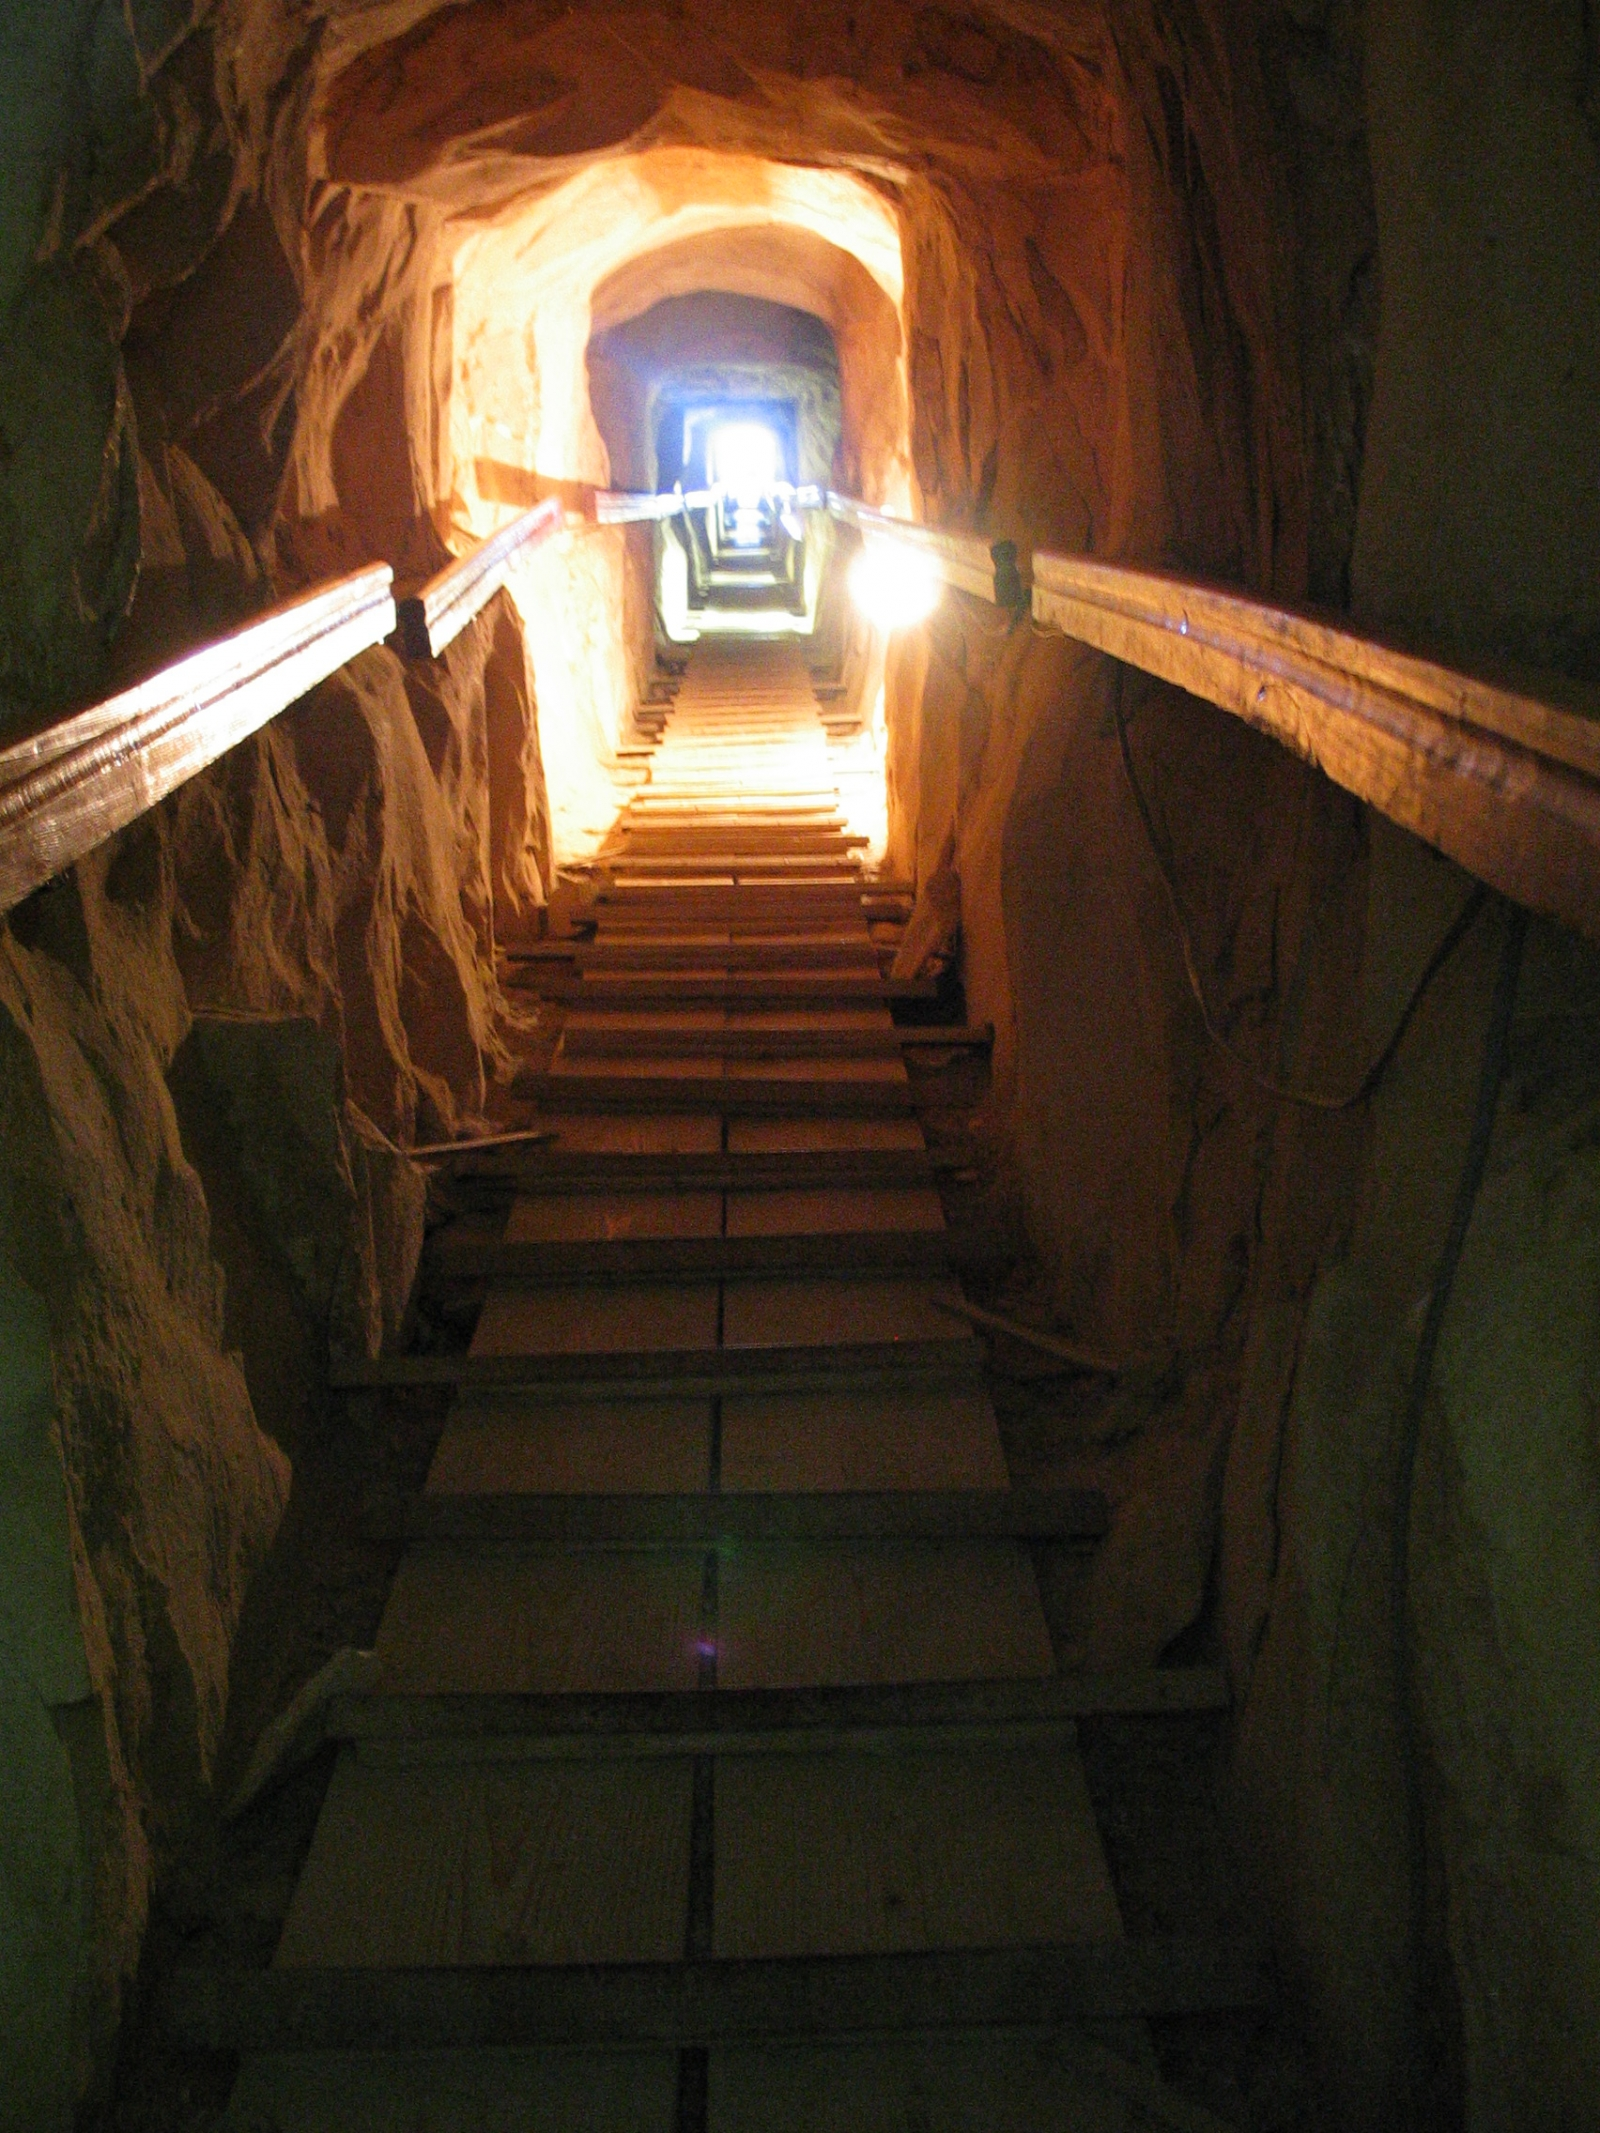 The entrance passageway inside the Meidum Pyramid